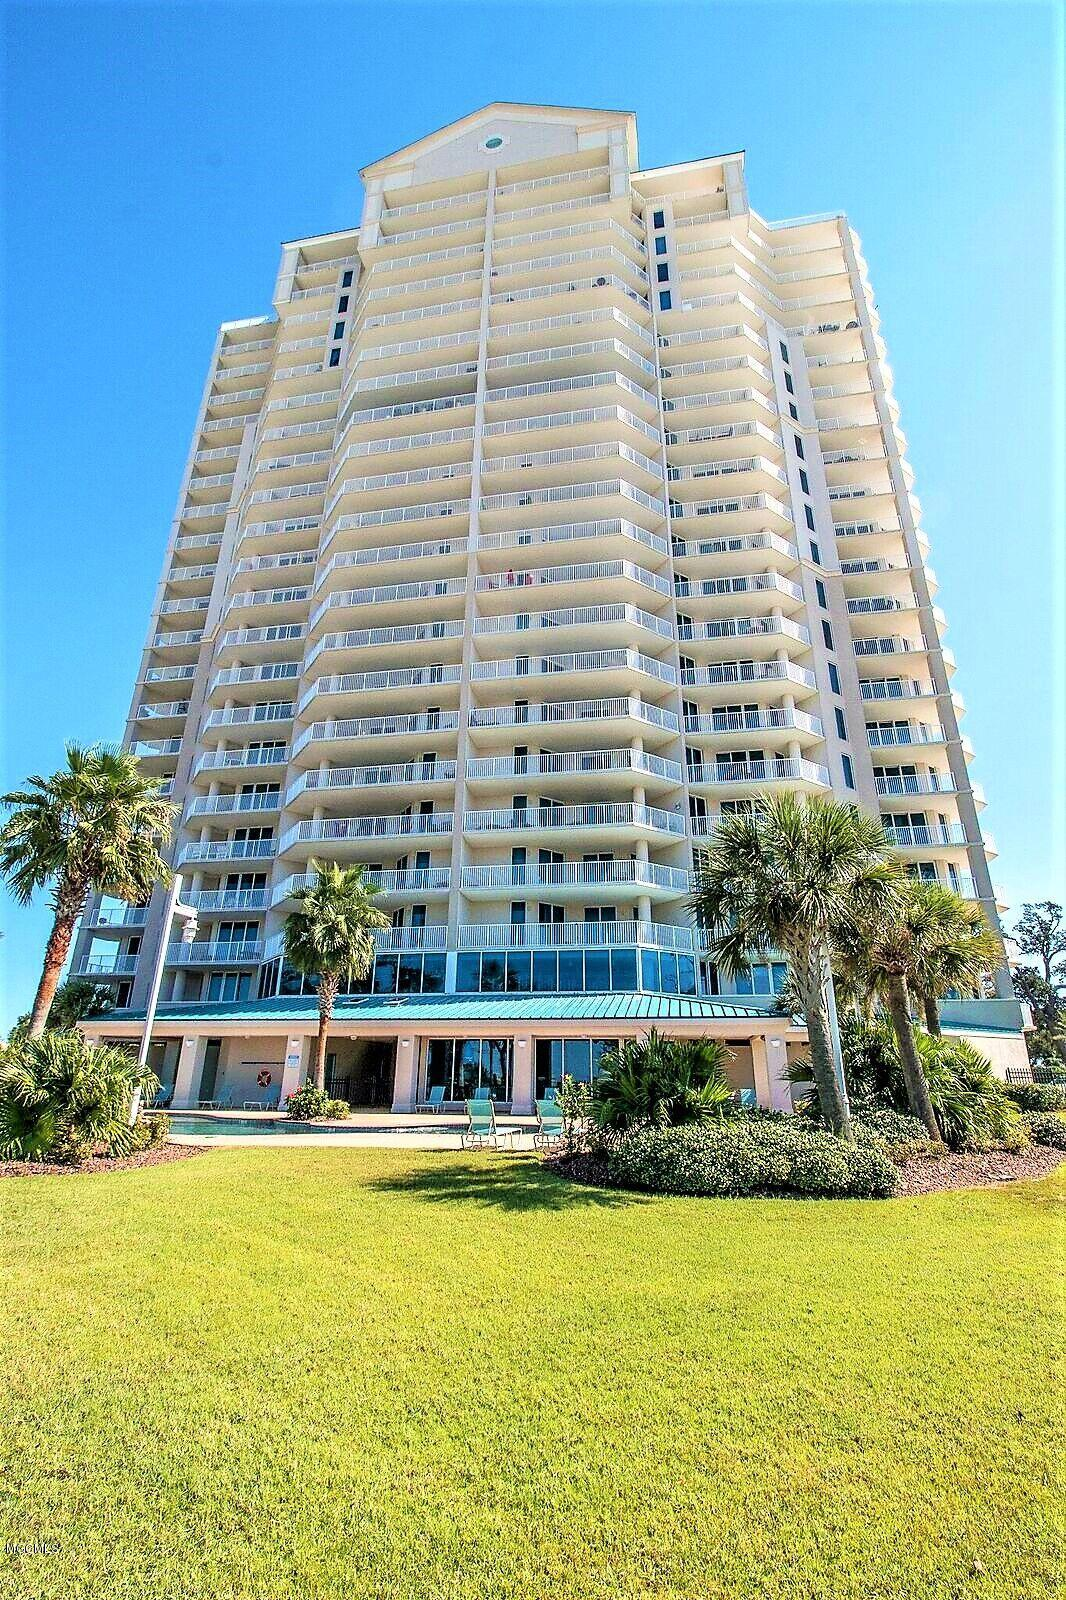 2668 Beach Blvd Unit: 606 Biloxi MS 39531